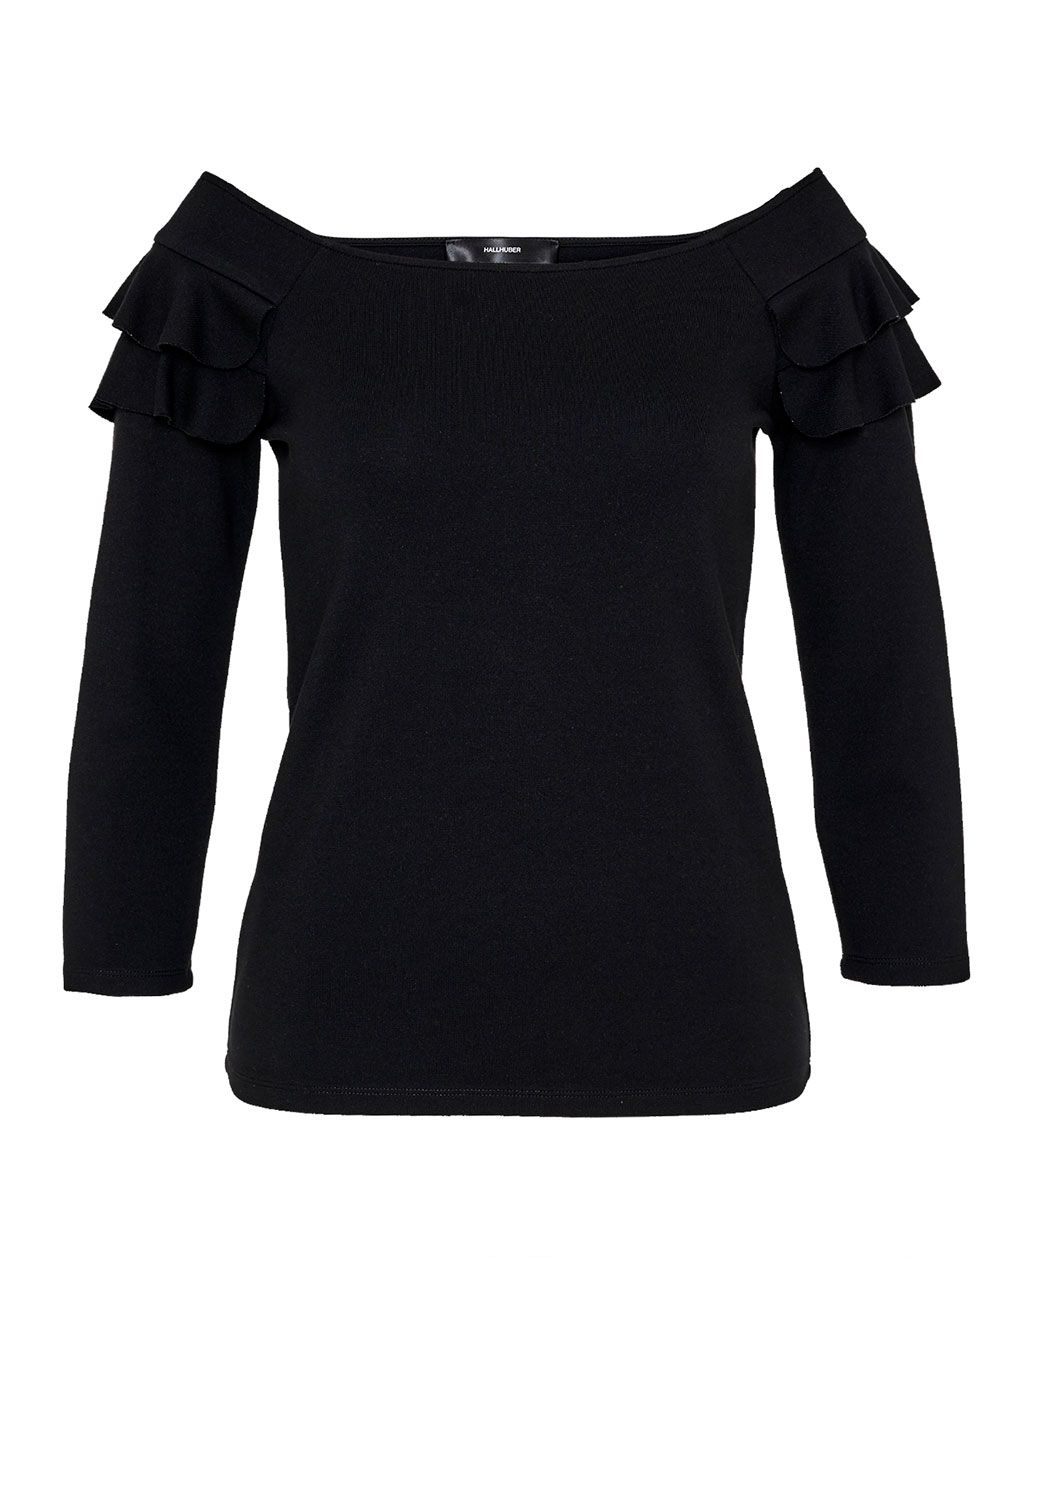 Hallhuber Off-the-shoulder ruffle top, Black